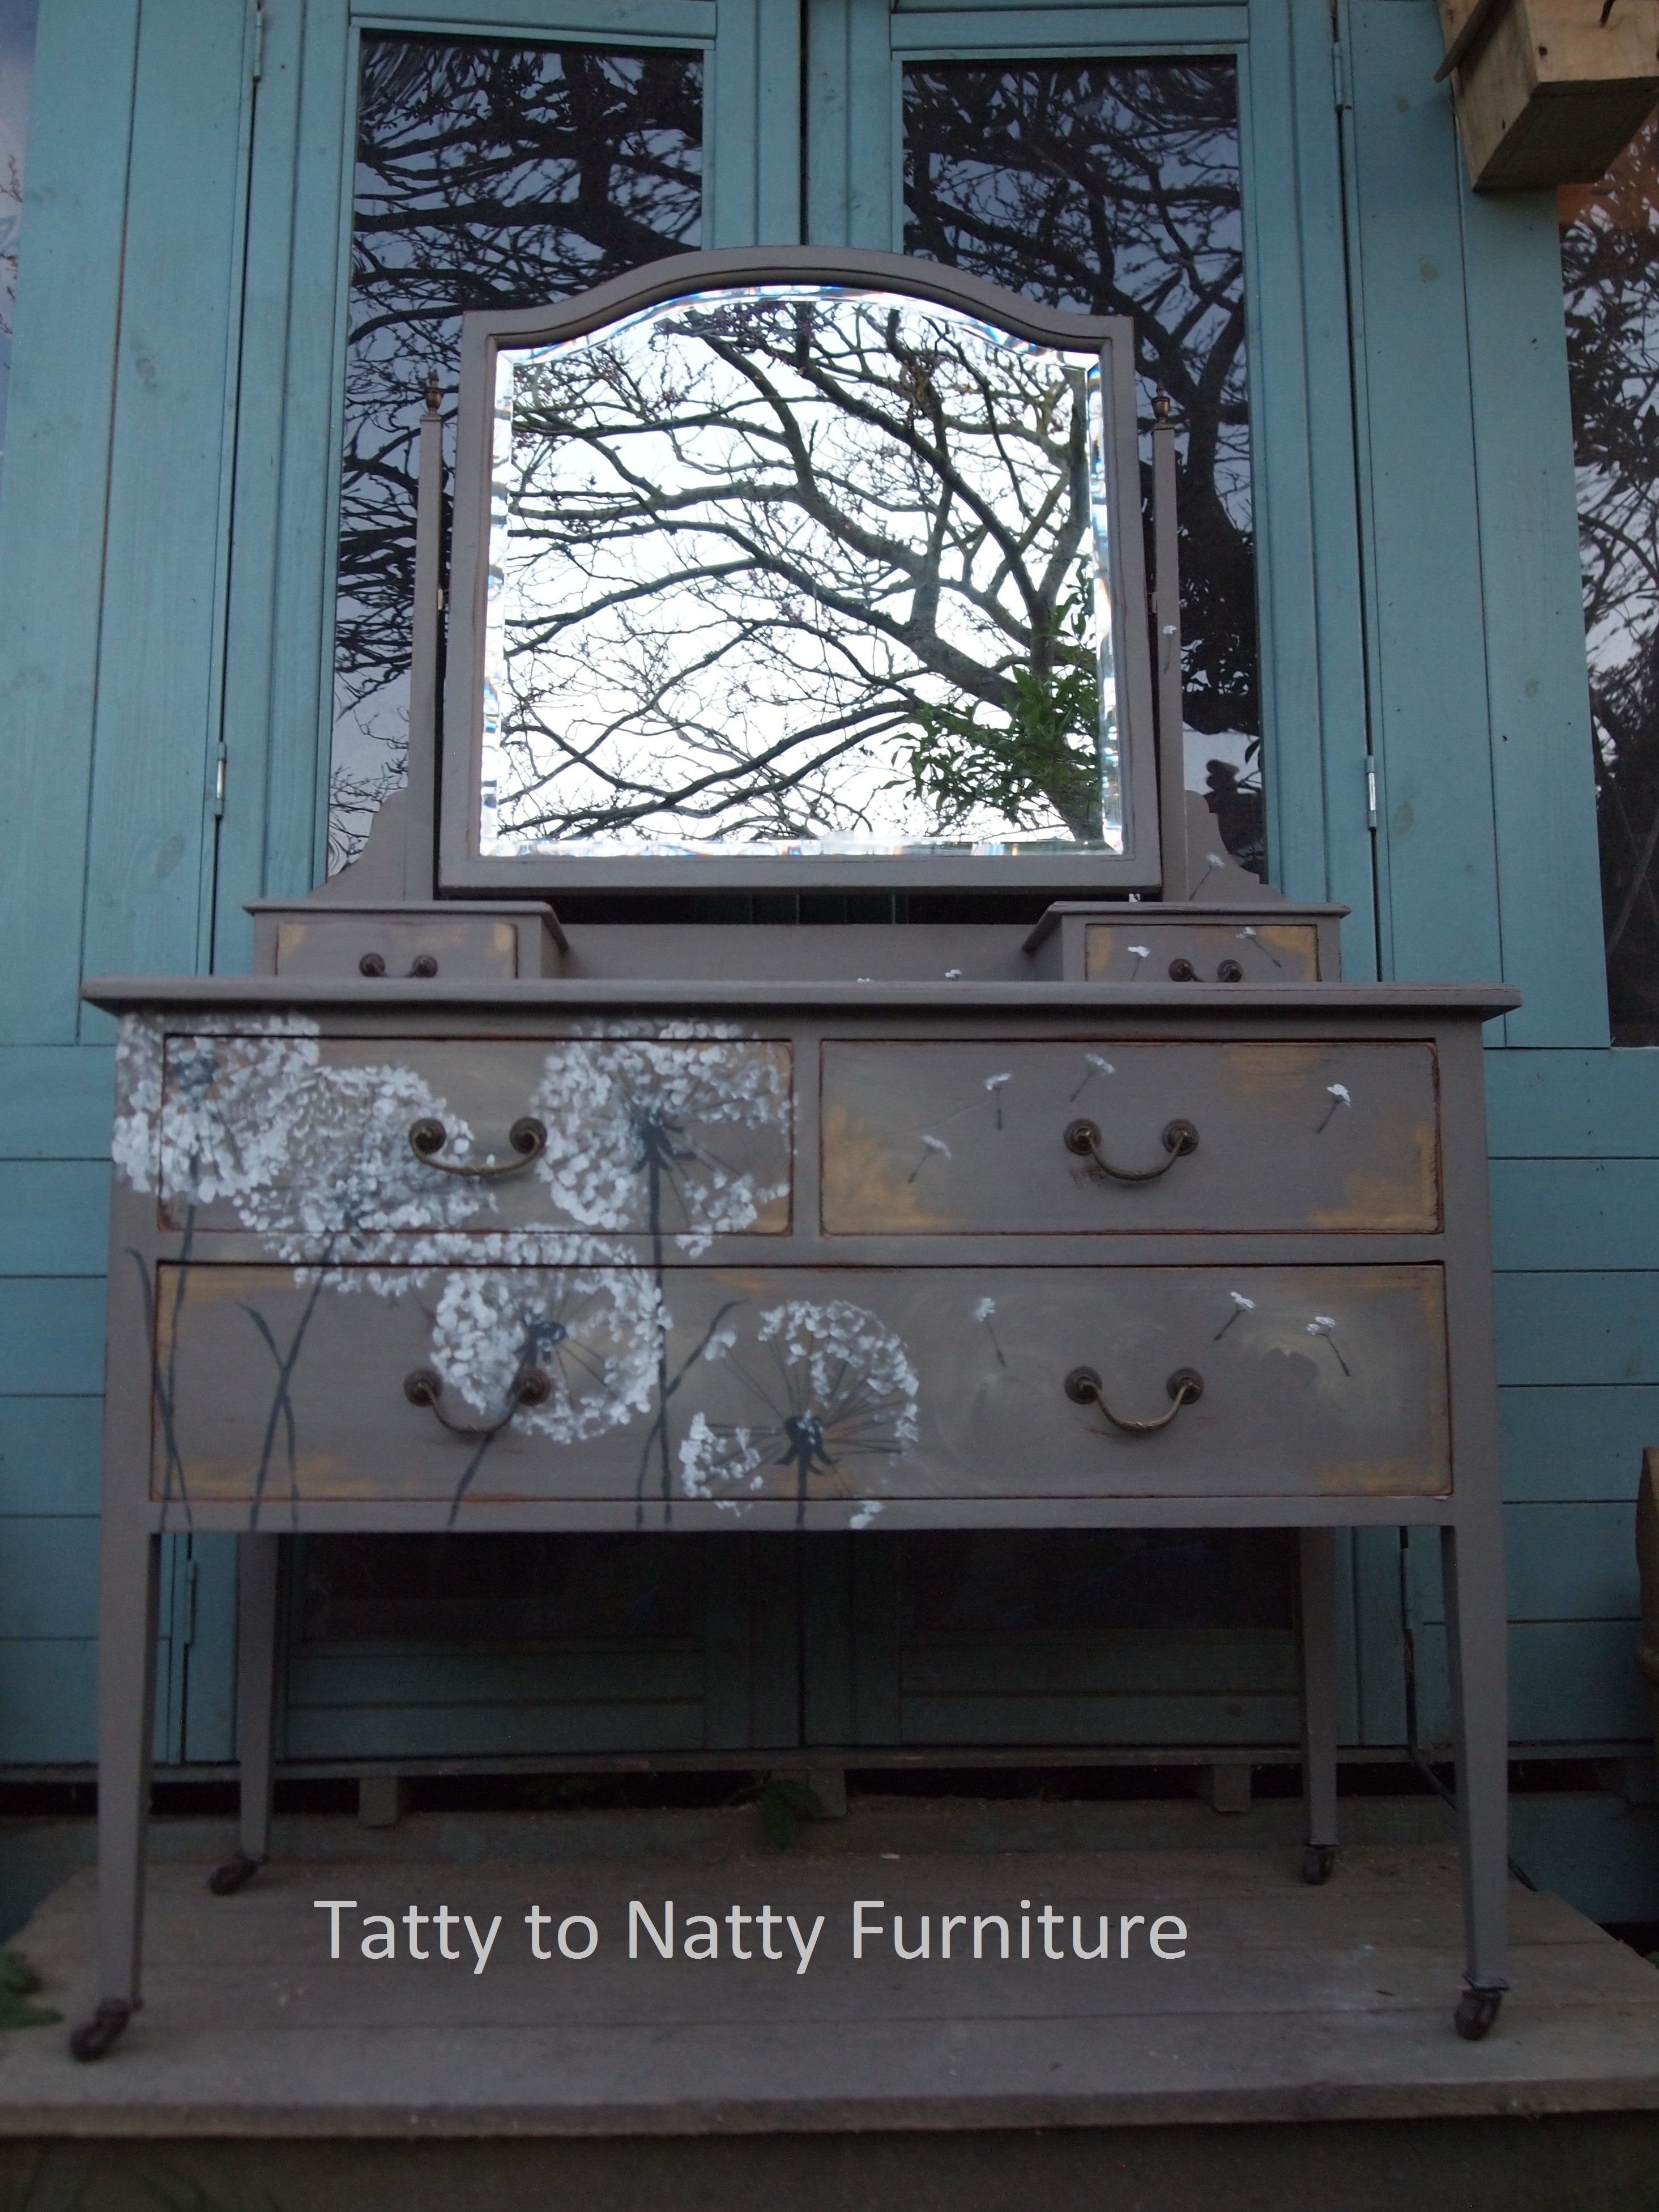 Vintage dressing table - Vintage Dressing Table Painted In Grey And Hand Painted Decorated With Dandelion Seed Heads And